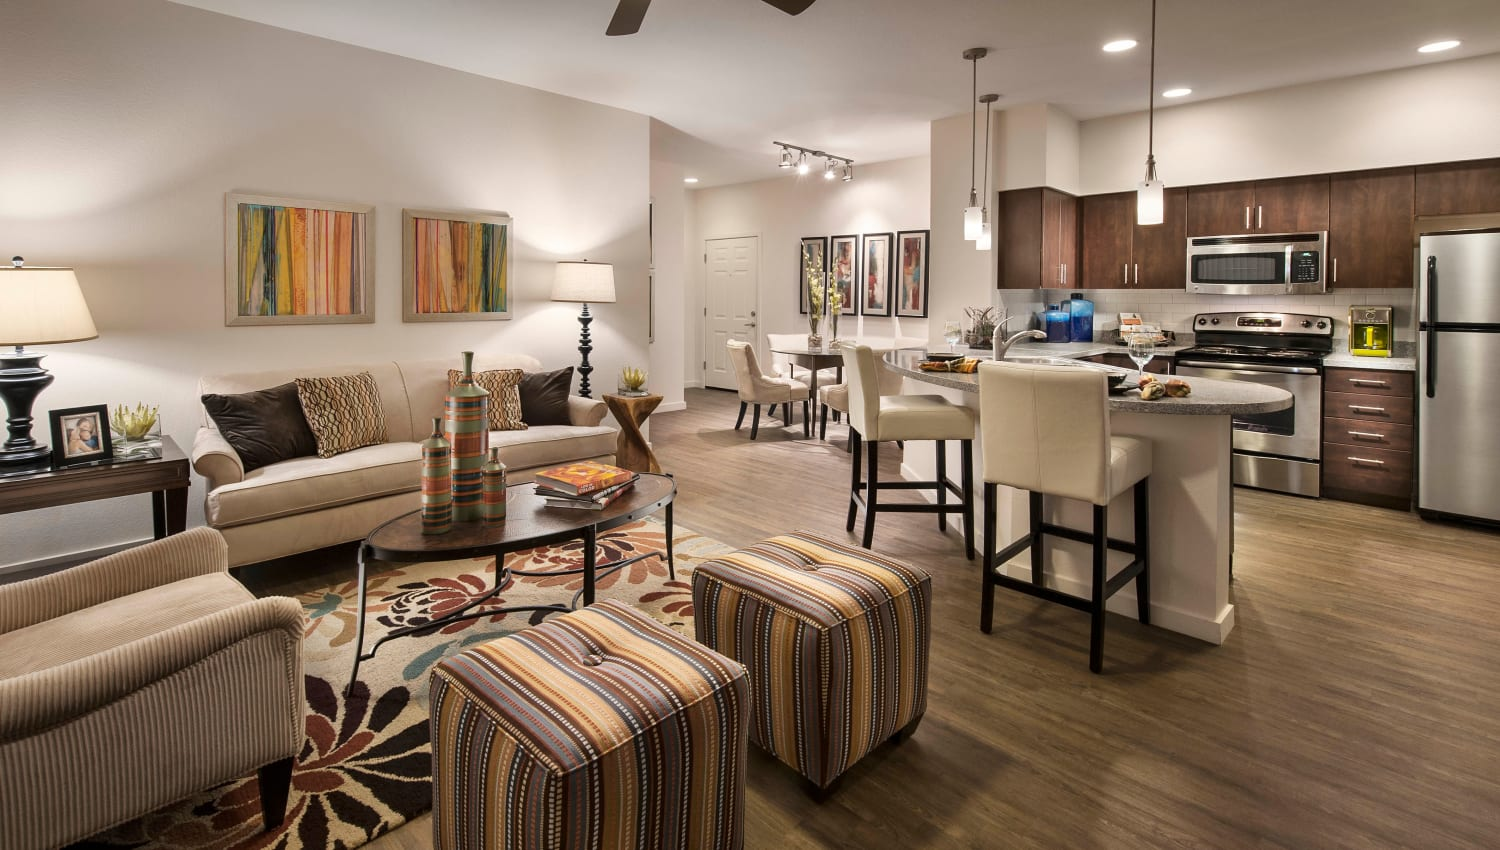 Spacious open-concept model home with hardwood flooring throughout the living areas at Redstone at SanTan Village in Gilbert, Arizona